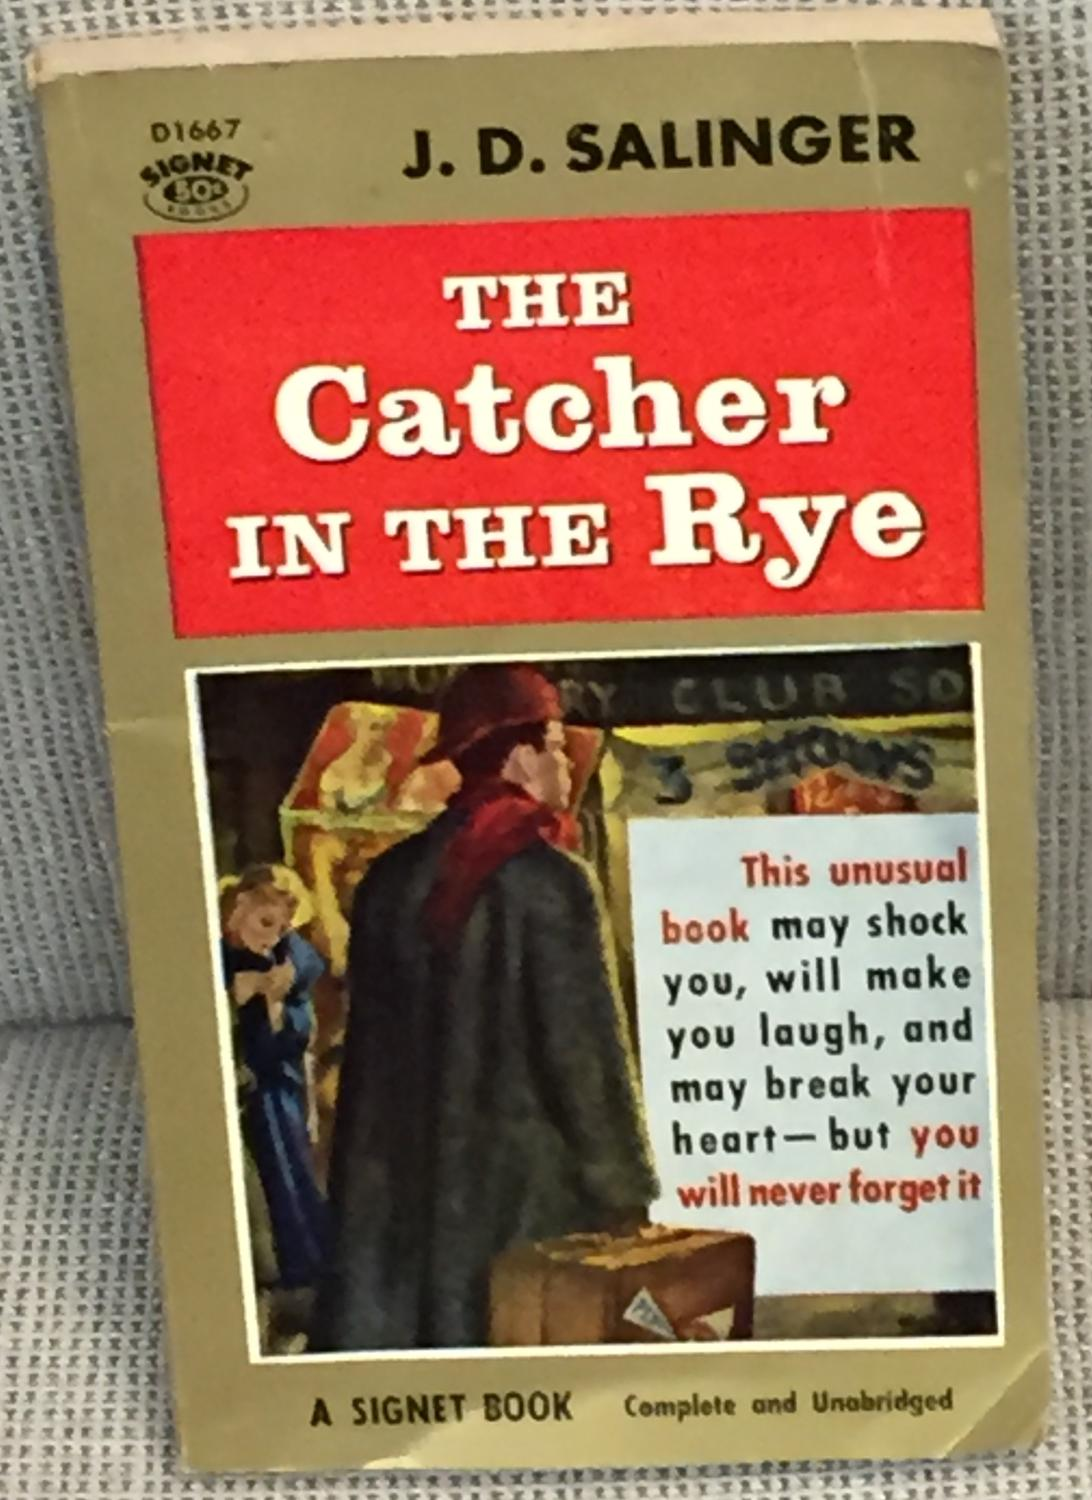 catcher in the rye analysis essays Catcher in the rye context and analysis catcher in the rye is a story of a young boy, holden caulfield's coming of age it takes place at a time when he has been.